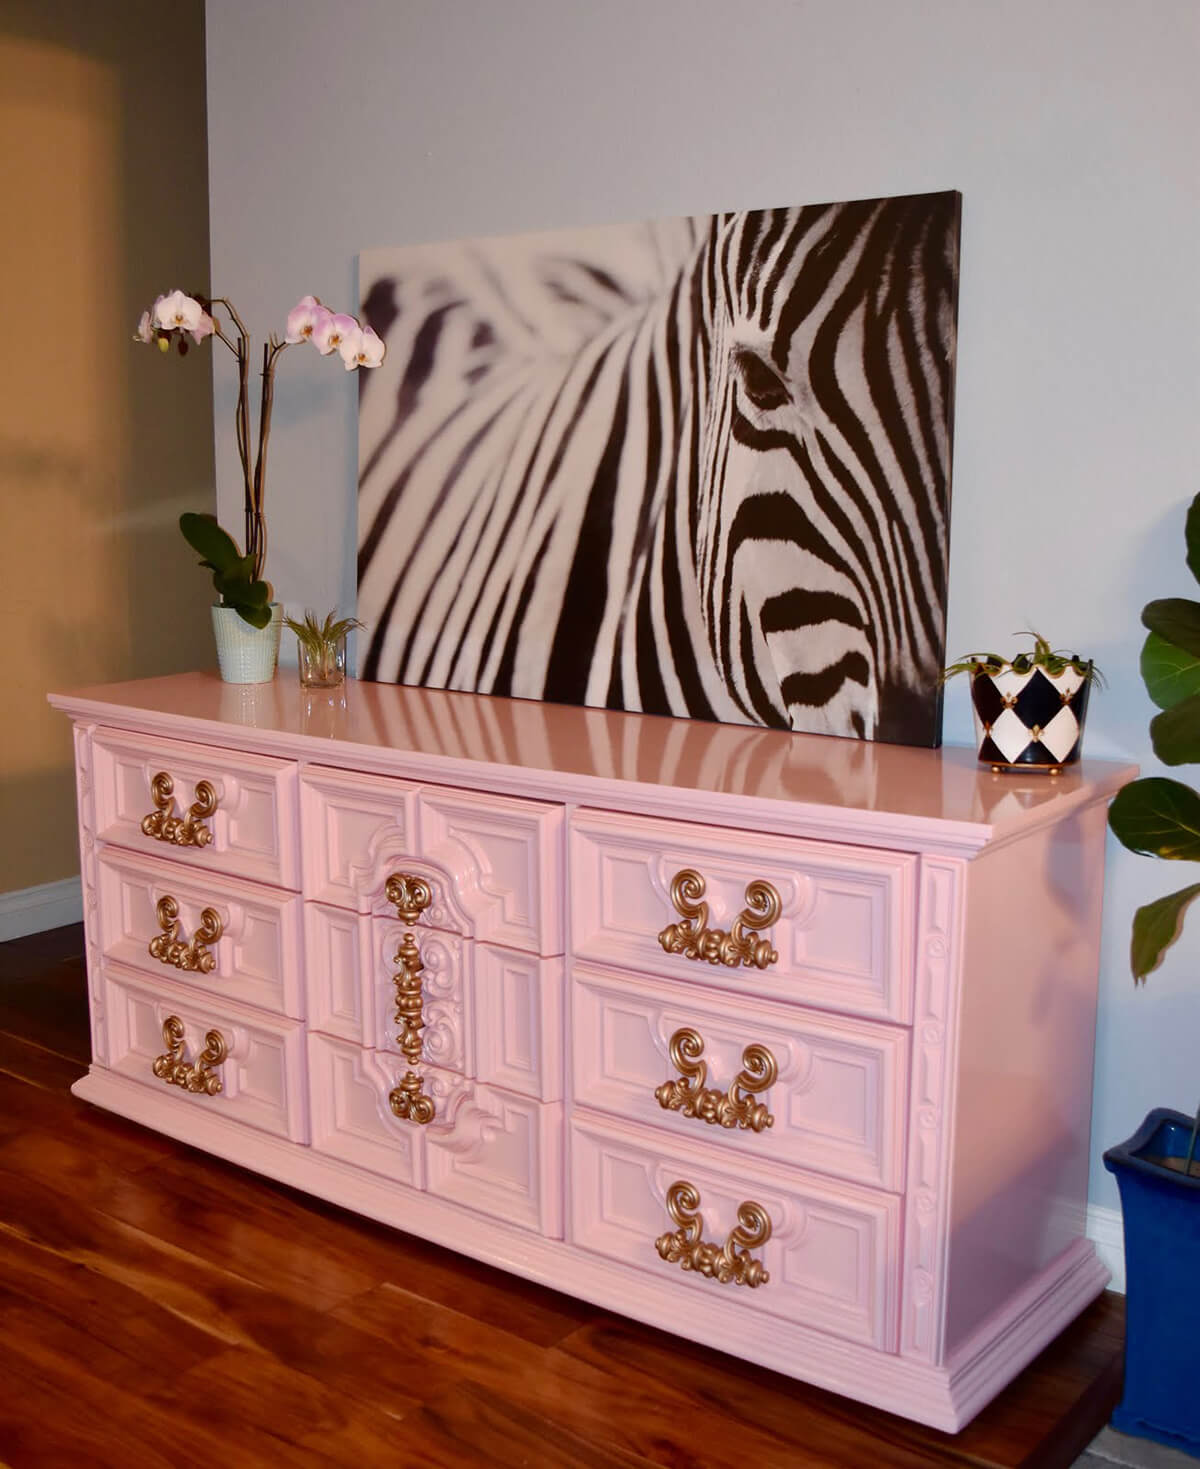 A Perfectly Pink and Chic Dresser Makeover